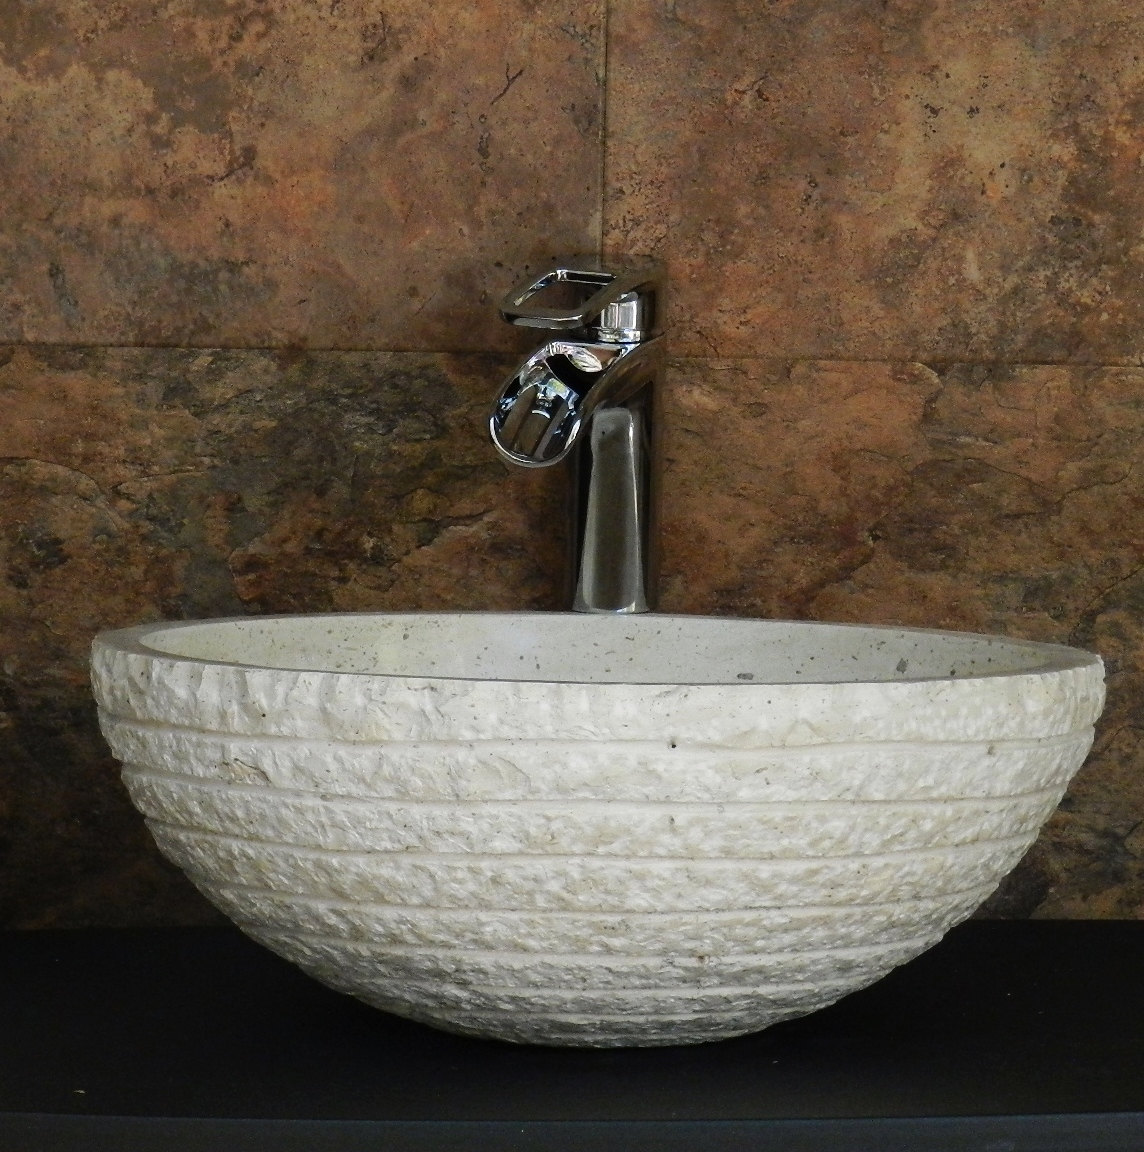 vessel sink that looks almost as a pure stone without much